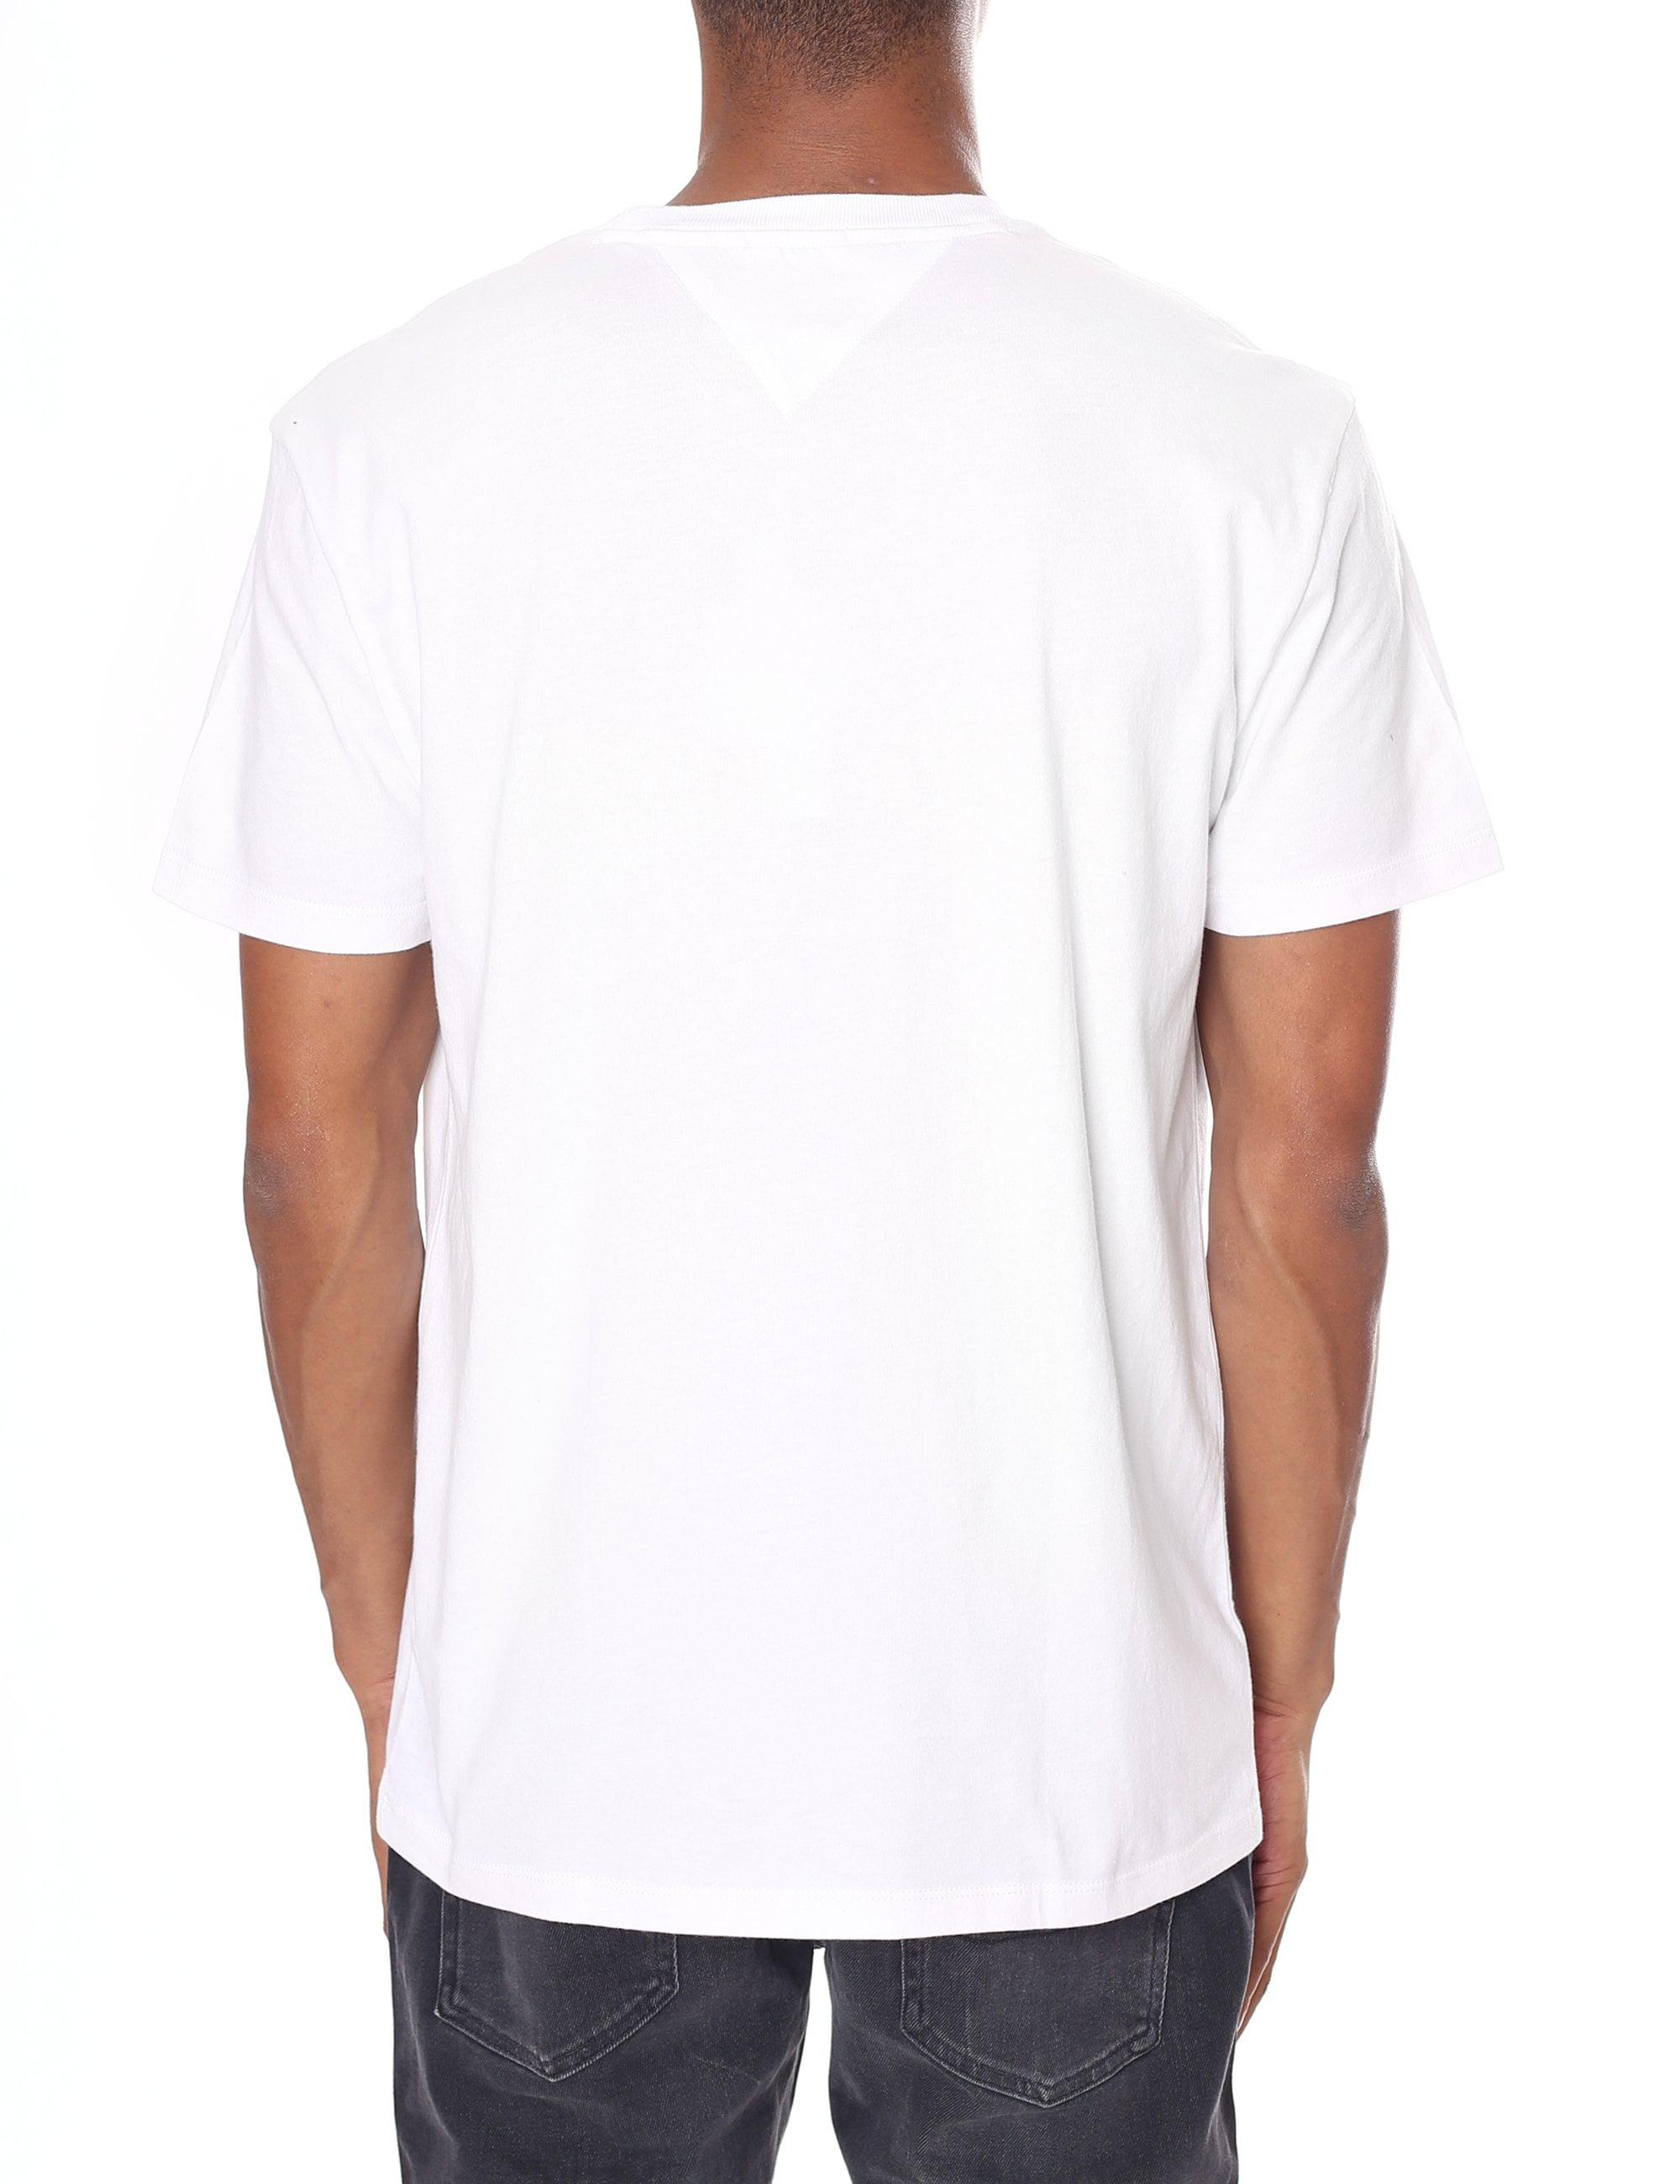 082e1a22 Tommy Hilfiger Men's Tjm Small Text Tee in White for Men - Lyst